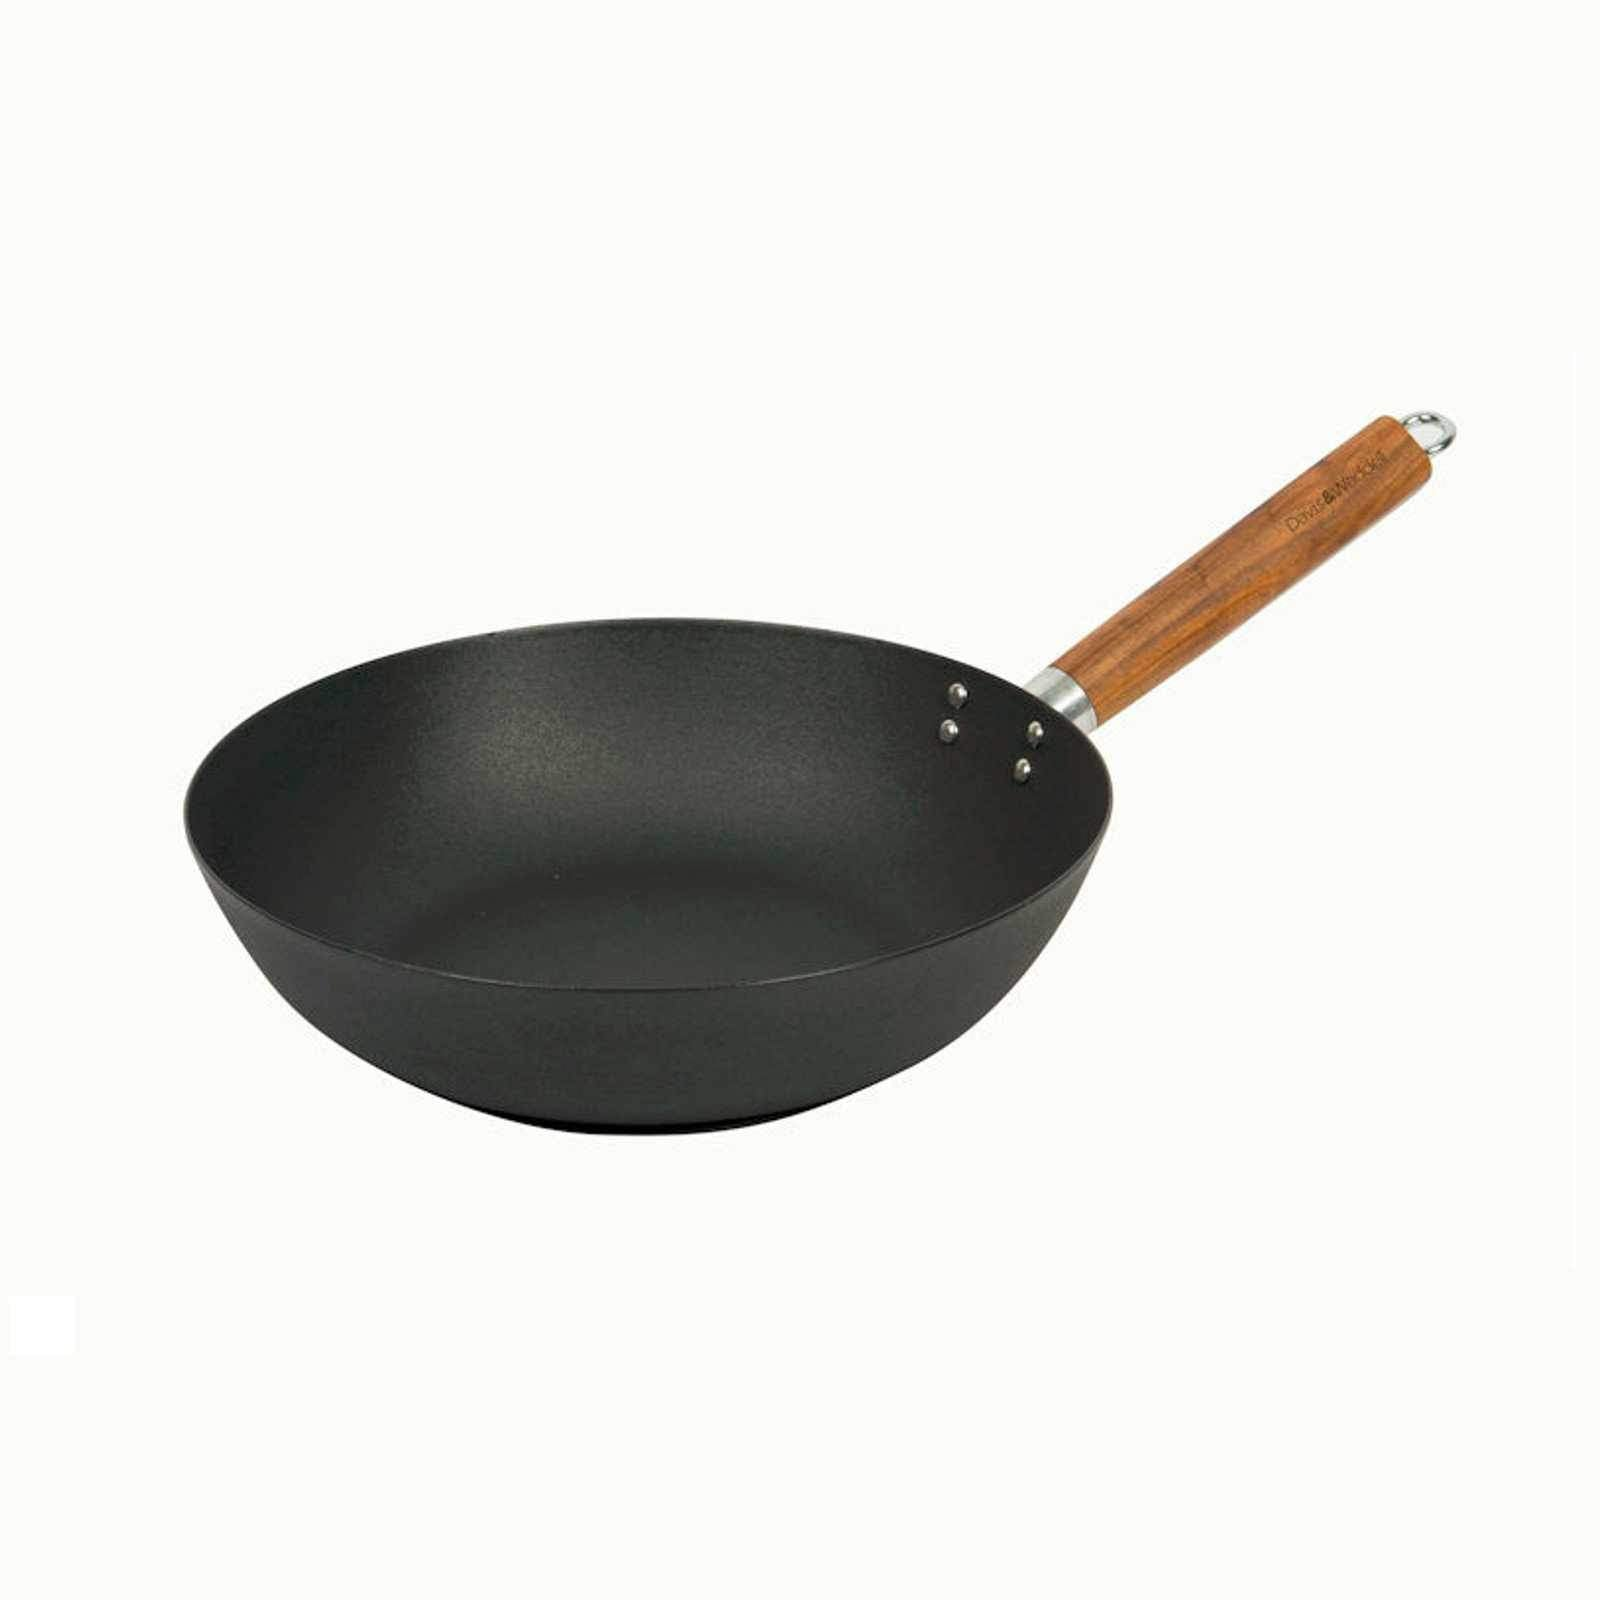 Lotus Rock Carbon Steel Wok 30cm-wok-Chef's Quality Cookware